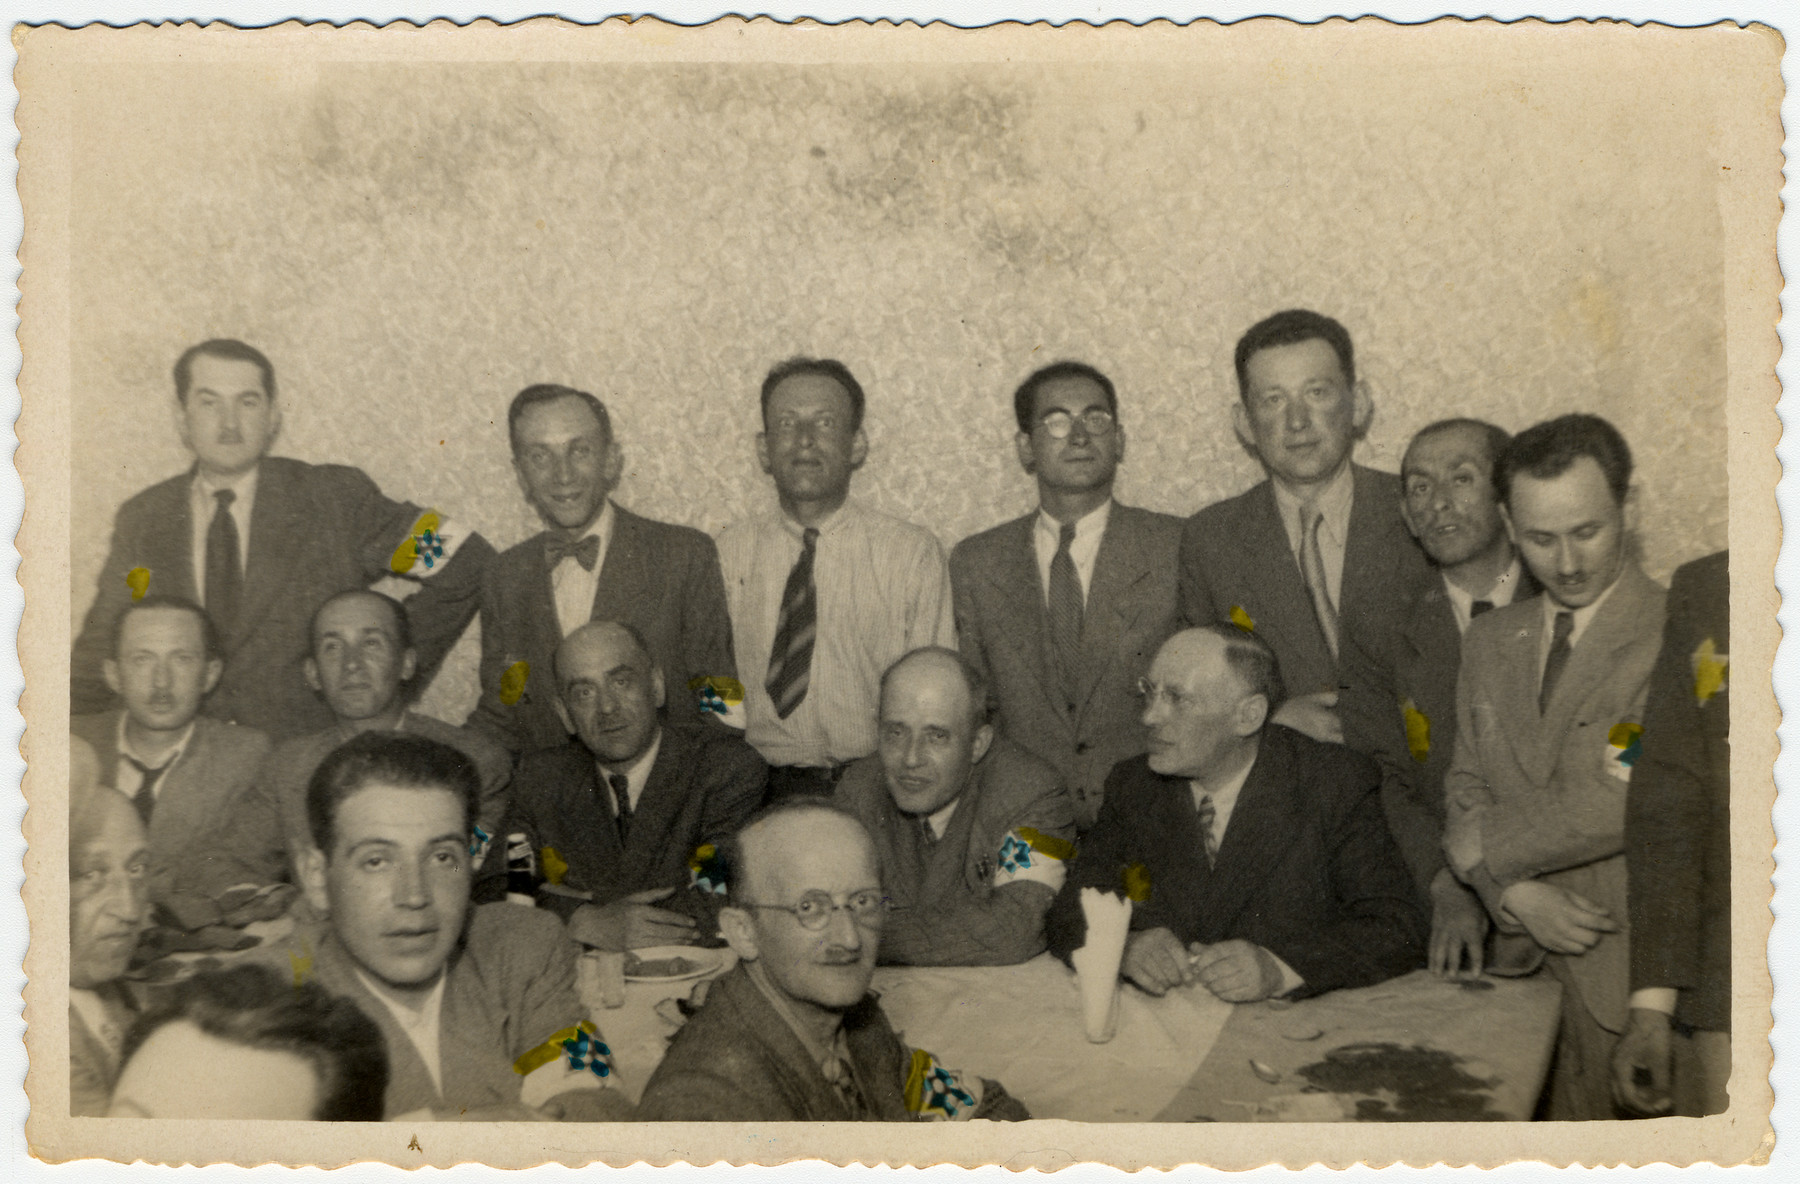 Partially colorized photograph of members of the Lodz ghetto administration, including the heads of workshops, police and members of the Sonderkommando, at a social gathering.  Among those pictured are: donor's maternal uncle Leon Fajtlowicz, in charge of the leather workshops (standing fourth from the left), Zygmunt Reingold, director of food supply (standing fifth from the left), Baruch Praszker, chief of special assignments (standing second from the right),  Leon Rozenblatt, chief of the ghetto police (seated on the far side of the table, third from left) and David Warszawski, director of the tailoring workshops (seated on the far side of the table, first from right).